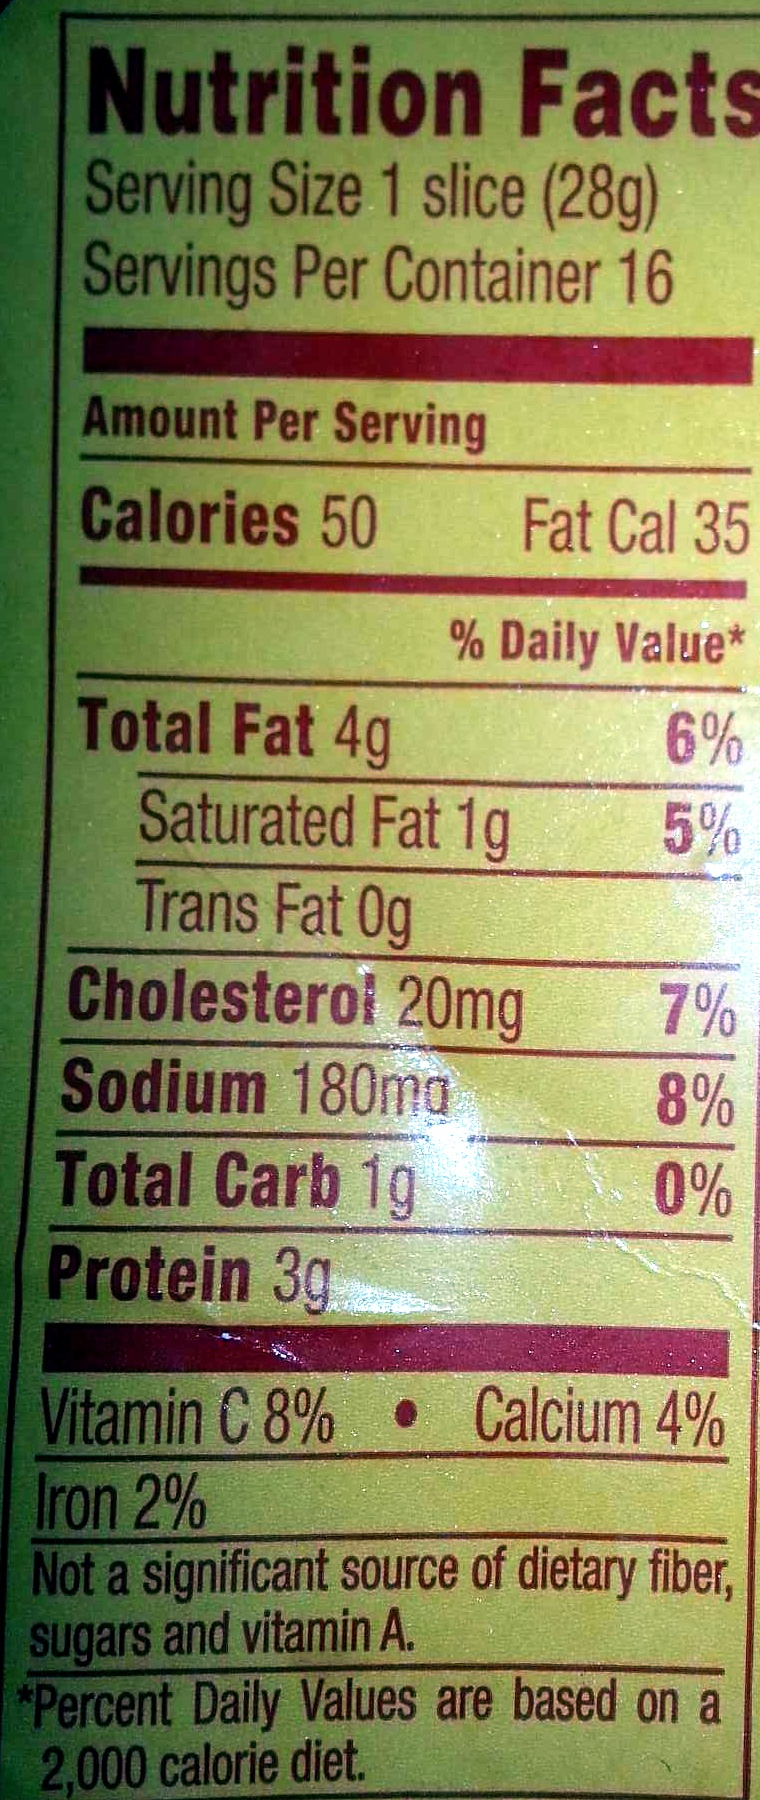 7187154654 likewise Bologna Nutritional Information moreover Nutrition Facts Musselman S Applesauce as well Oscar Mayer Beef Bologna Nutrition Facts besides Turkey Bologna Oscar Mayer. on oscar mayer bologna nutrition facts